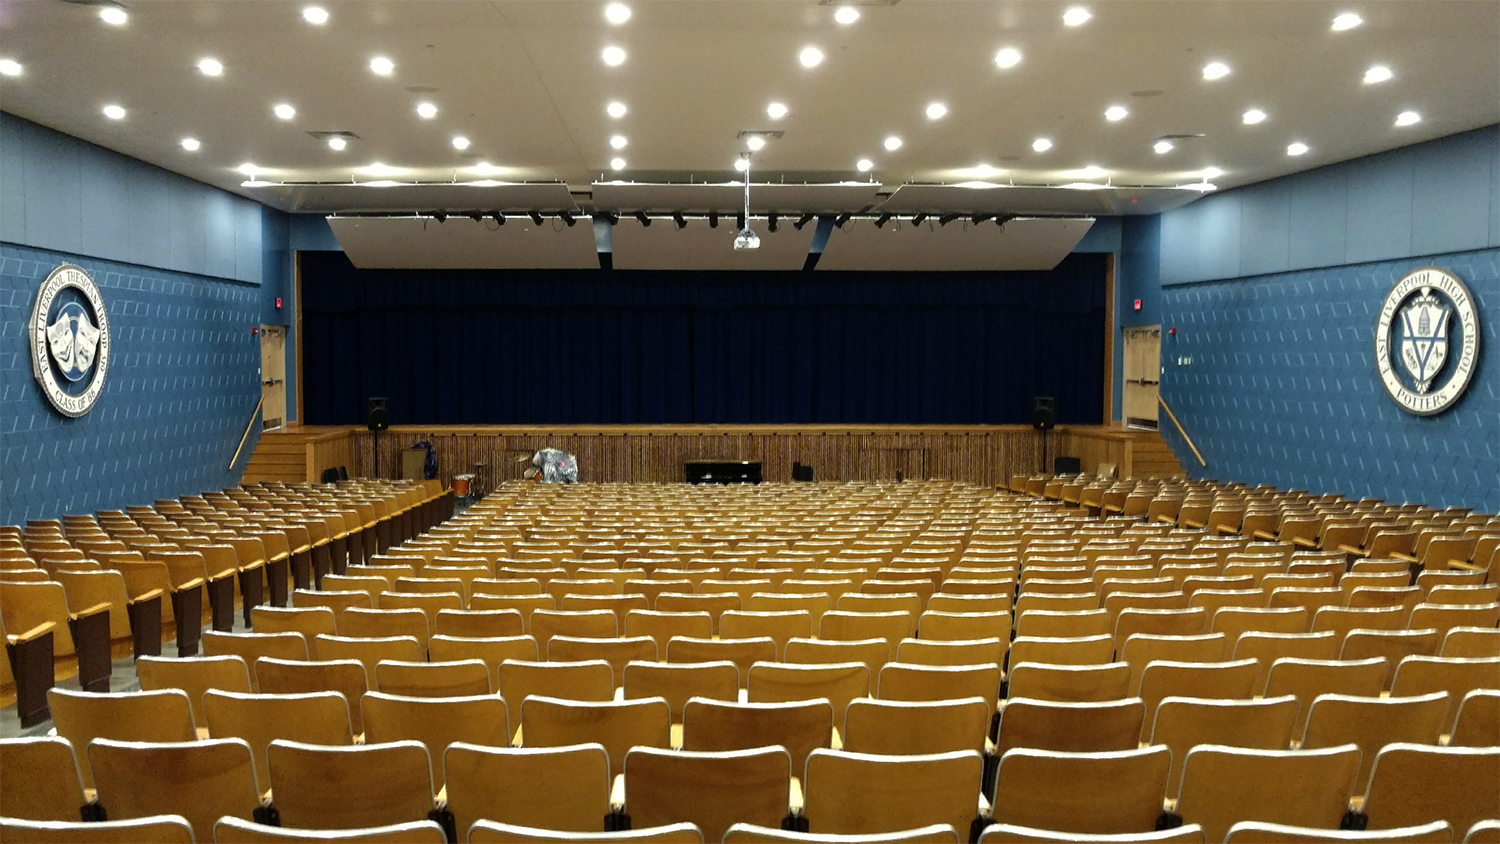 Image of the Auditorium – ELHS event area